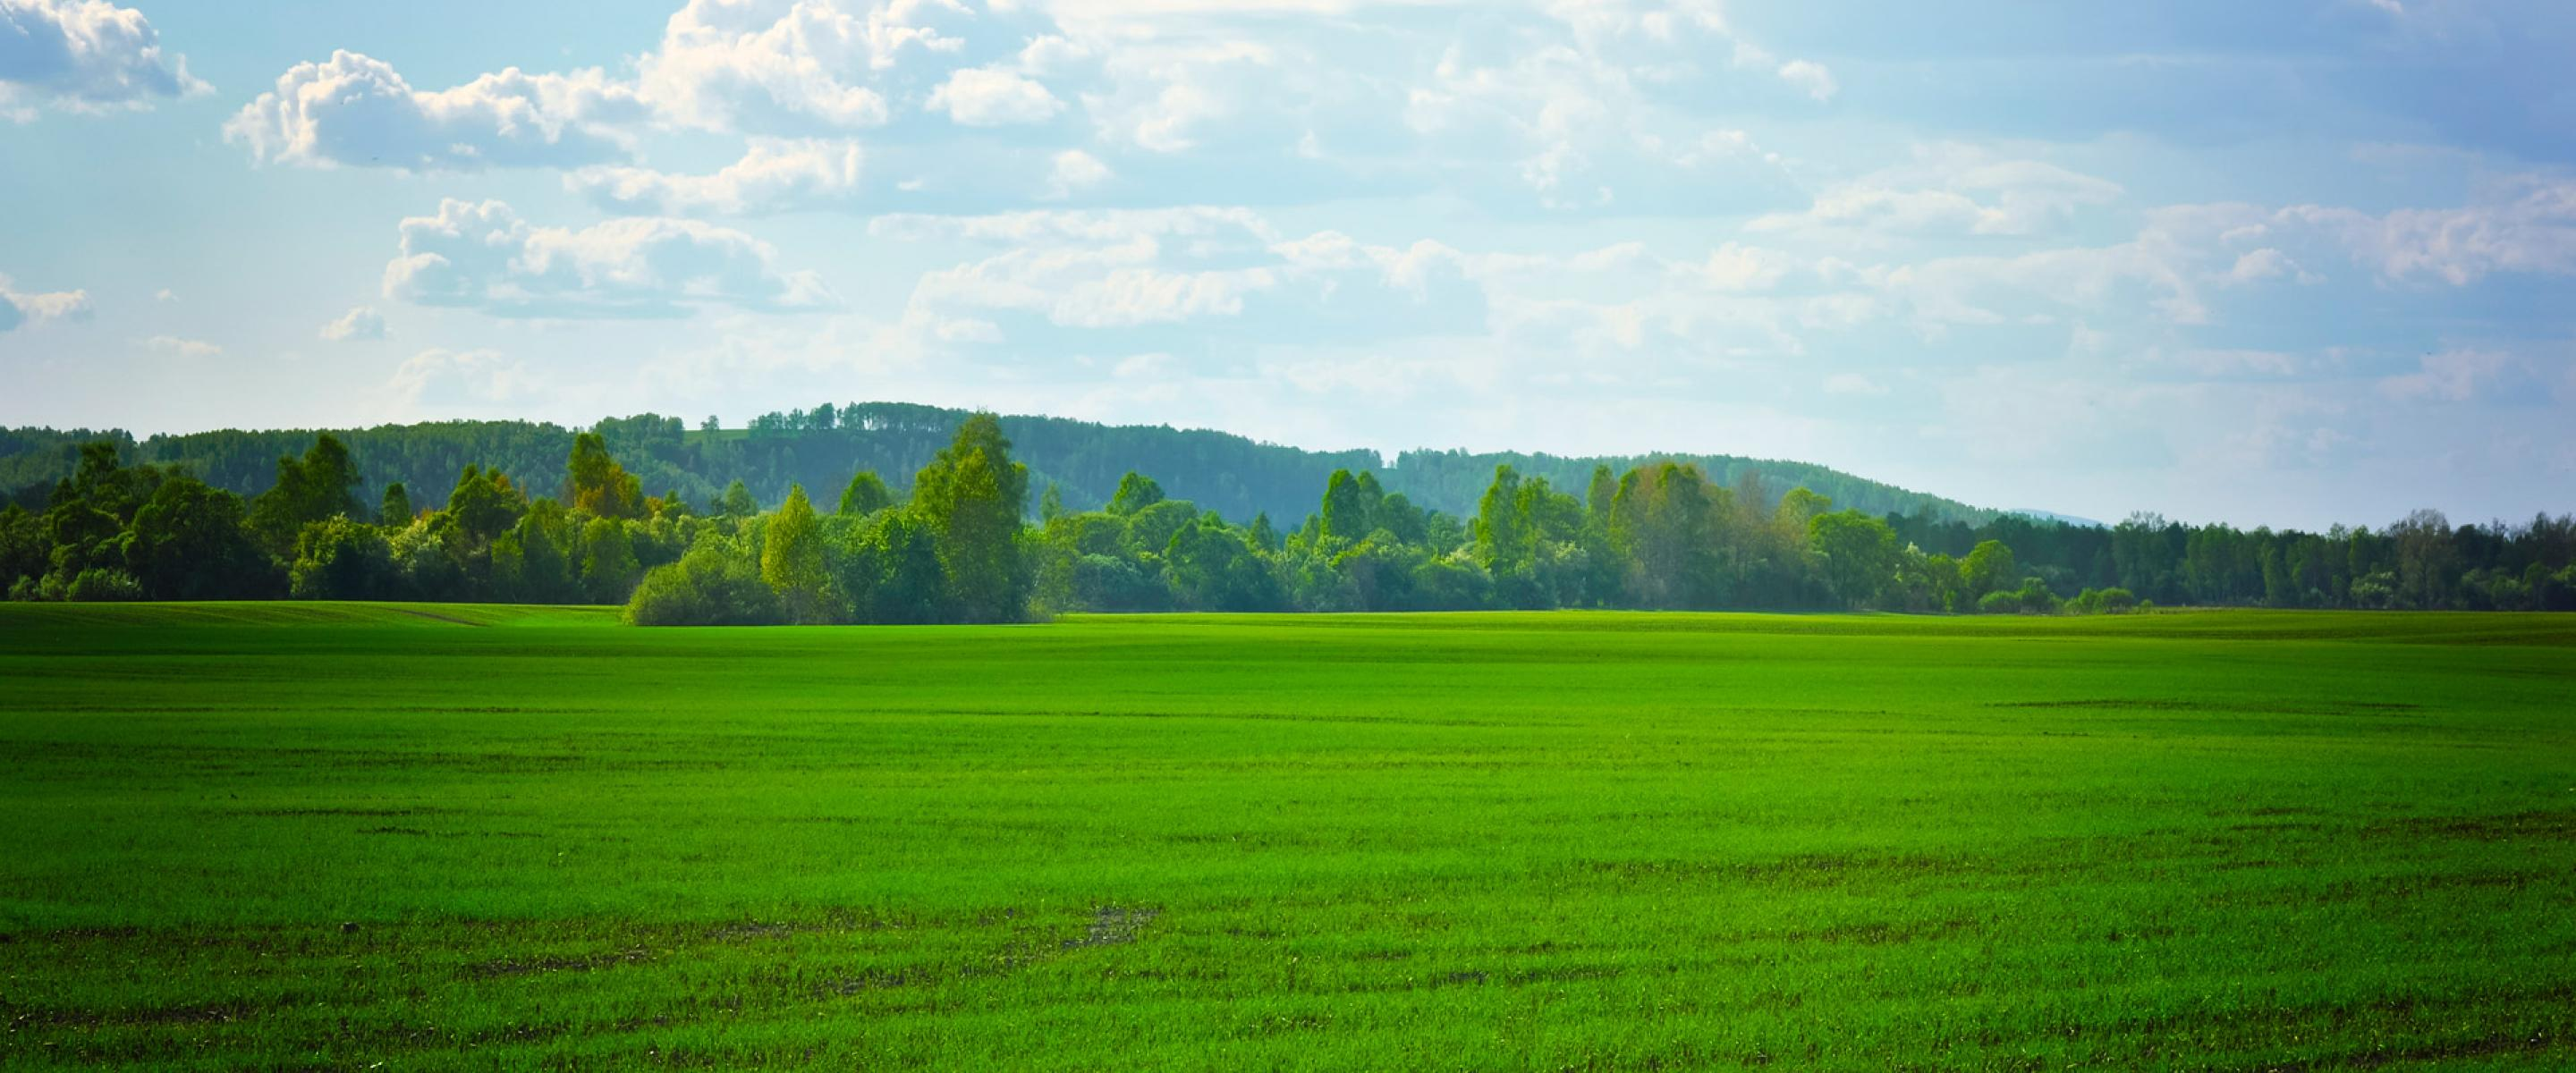 Green Field Desktop